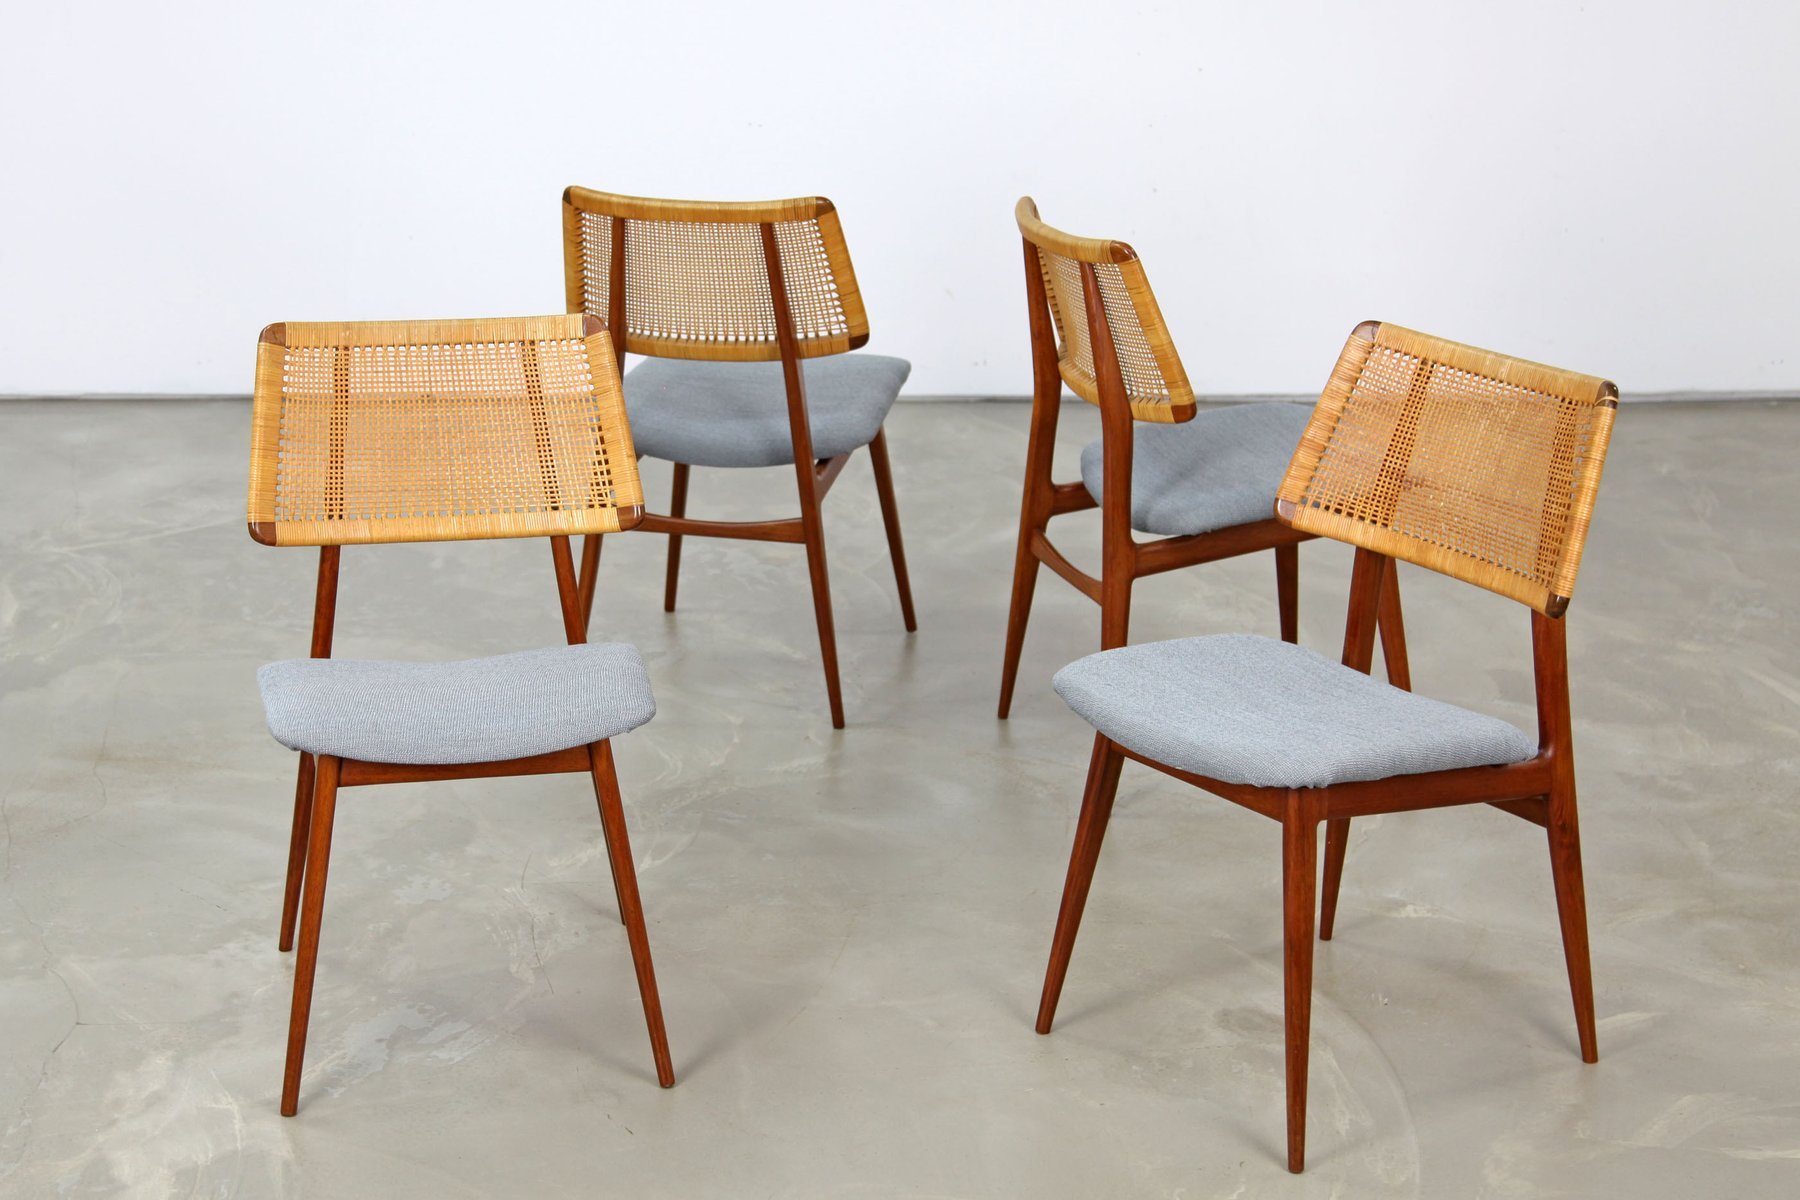 Danish Teak and Wicker Dining Chairs 1960s Set of 4 for  : danish teak and wicker dining chairs 1960s set of 4 1 from www.pamono.co.uk size 1800 x 1200 jpeg 152kB